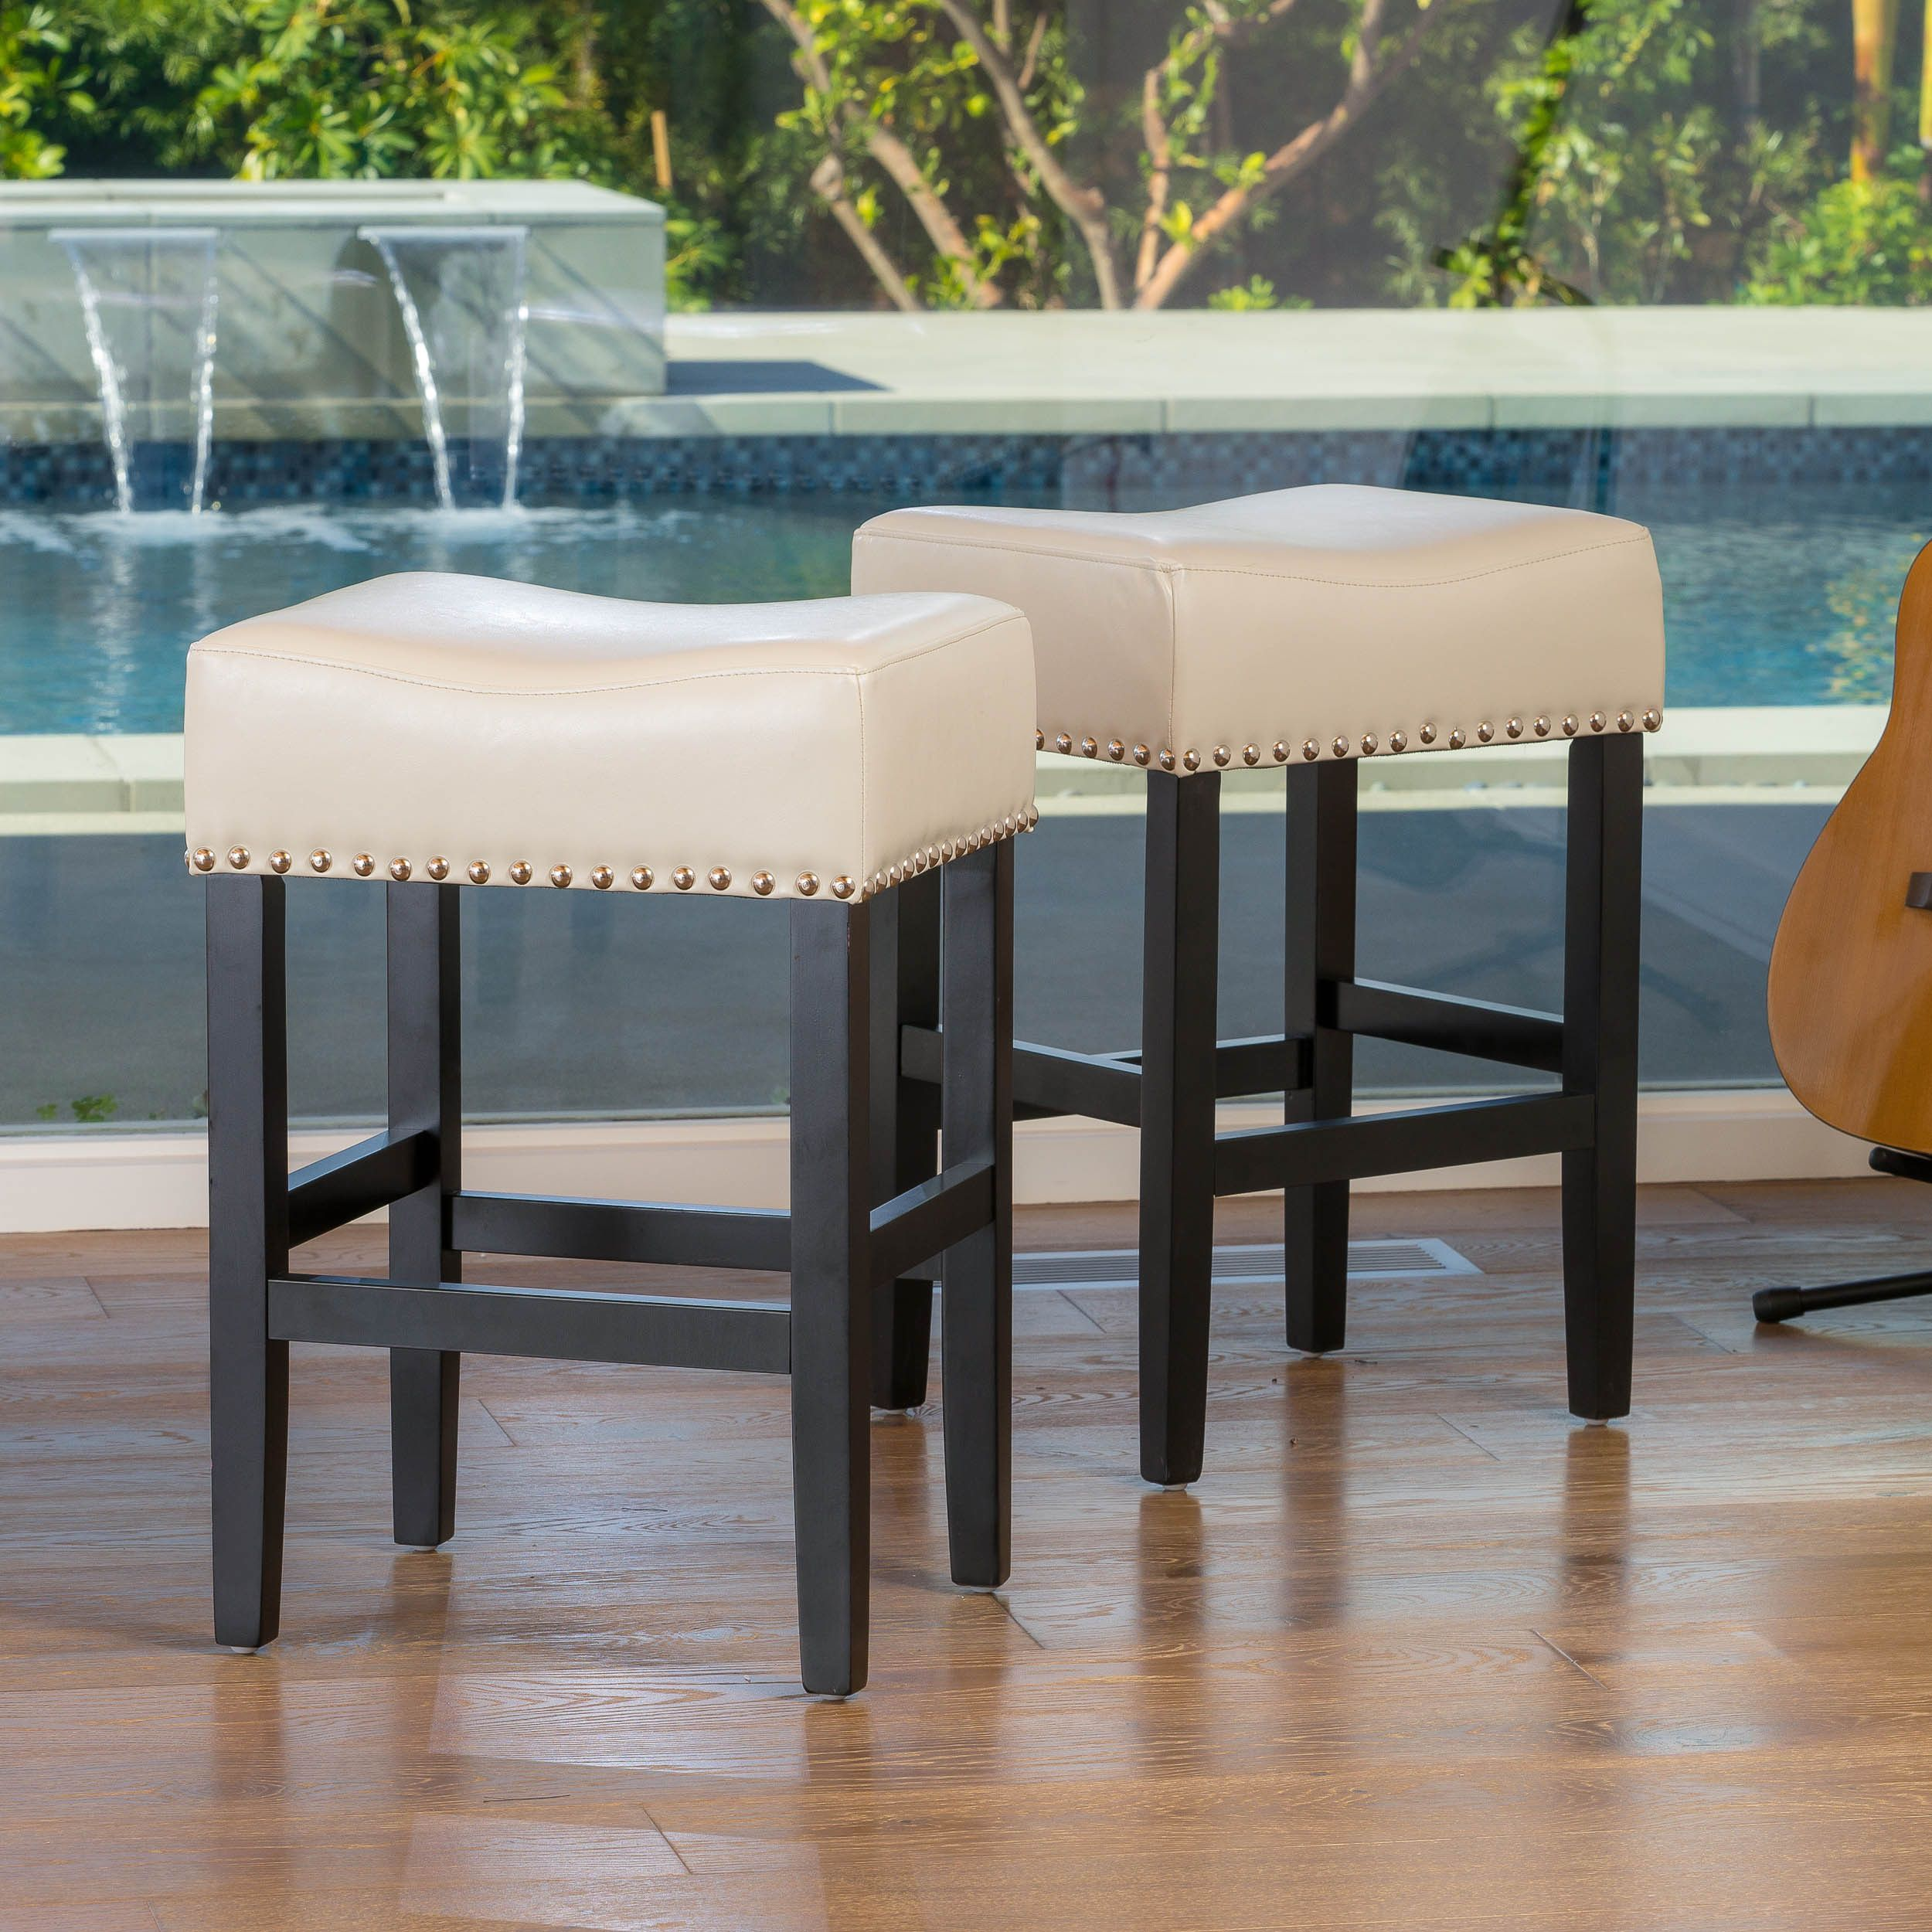 These fortably soft bonded leather counter stools are a